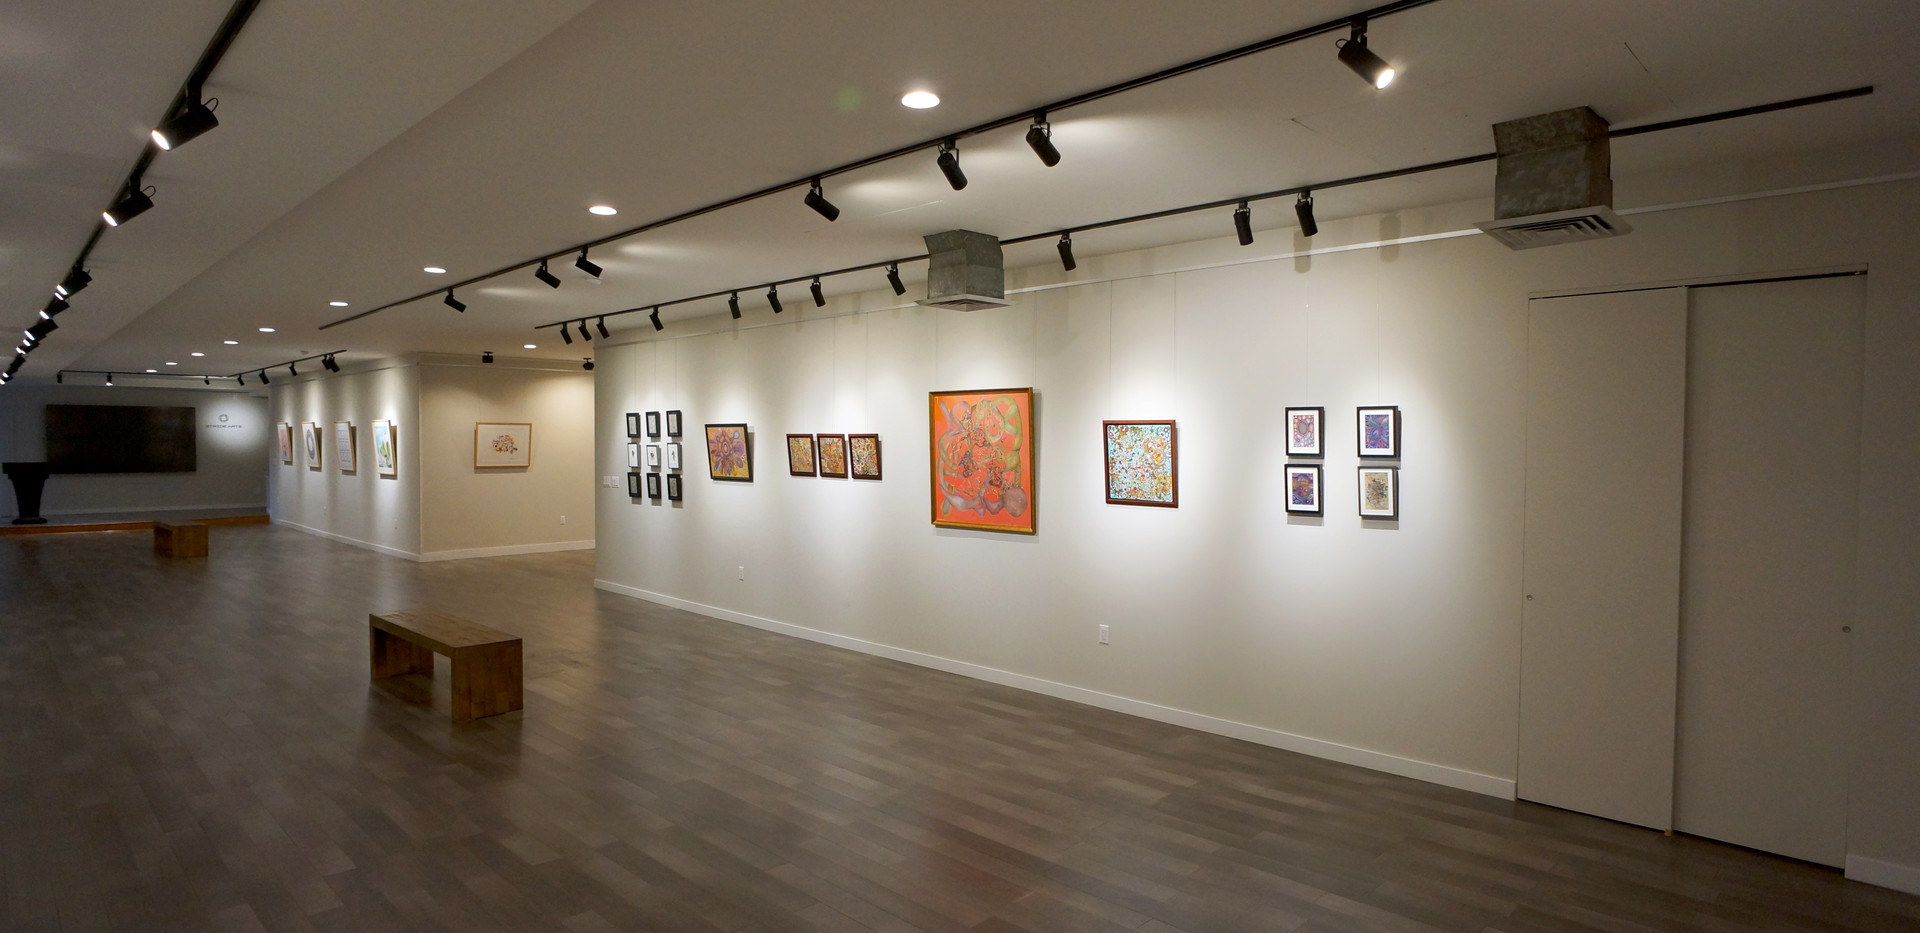 Installation image of Autumn Exhibition